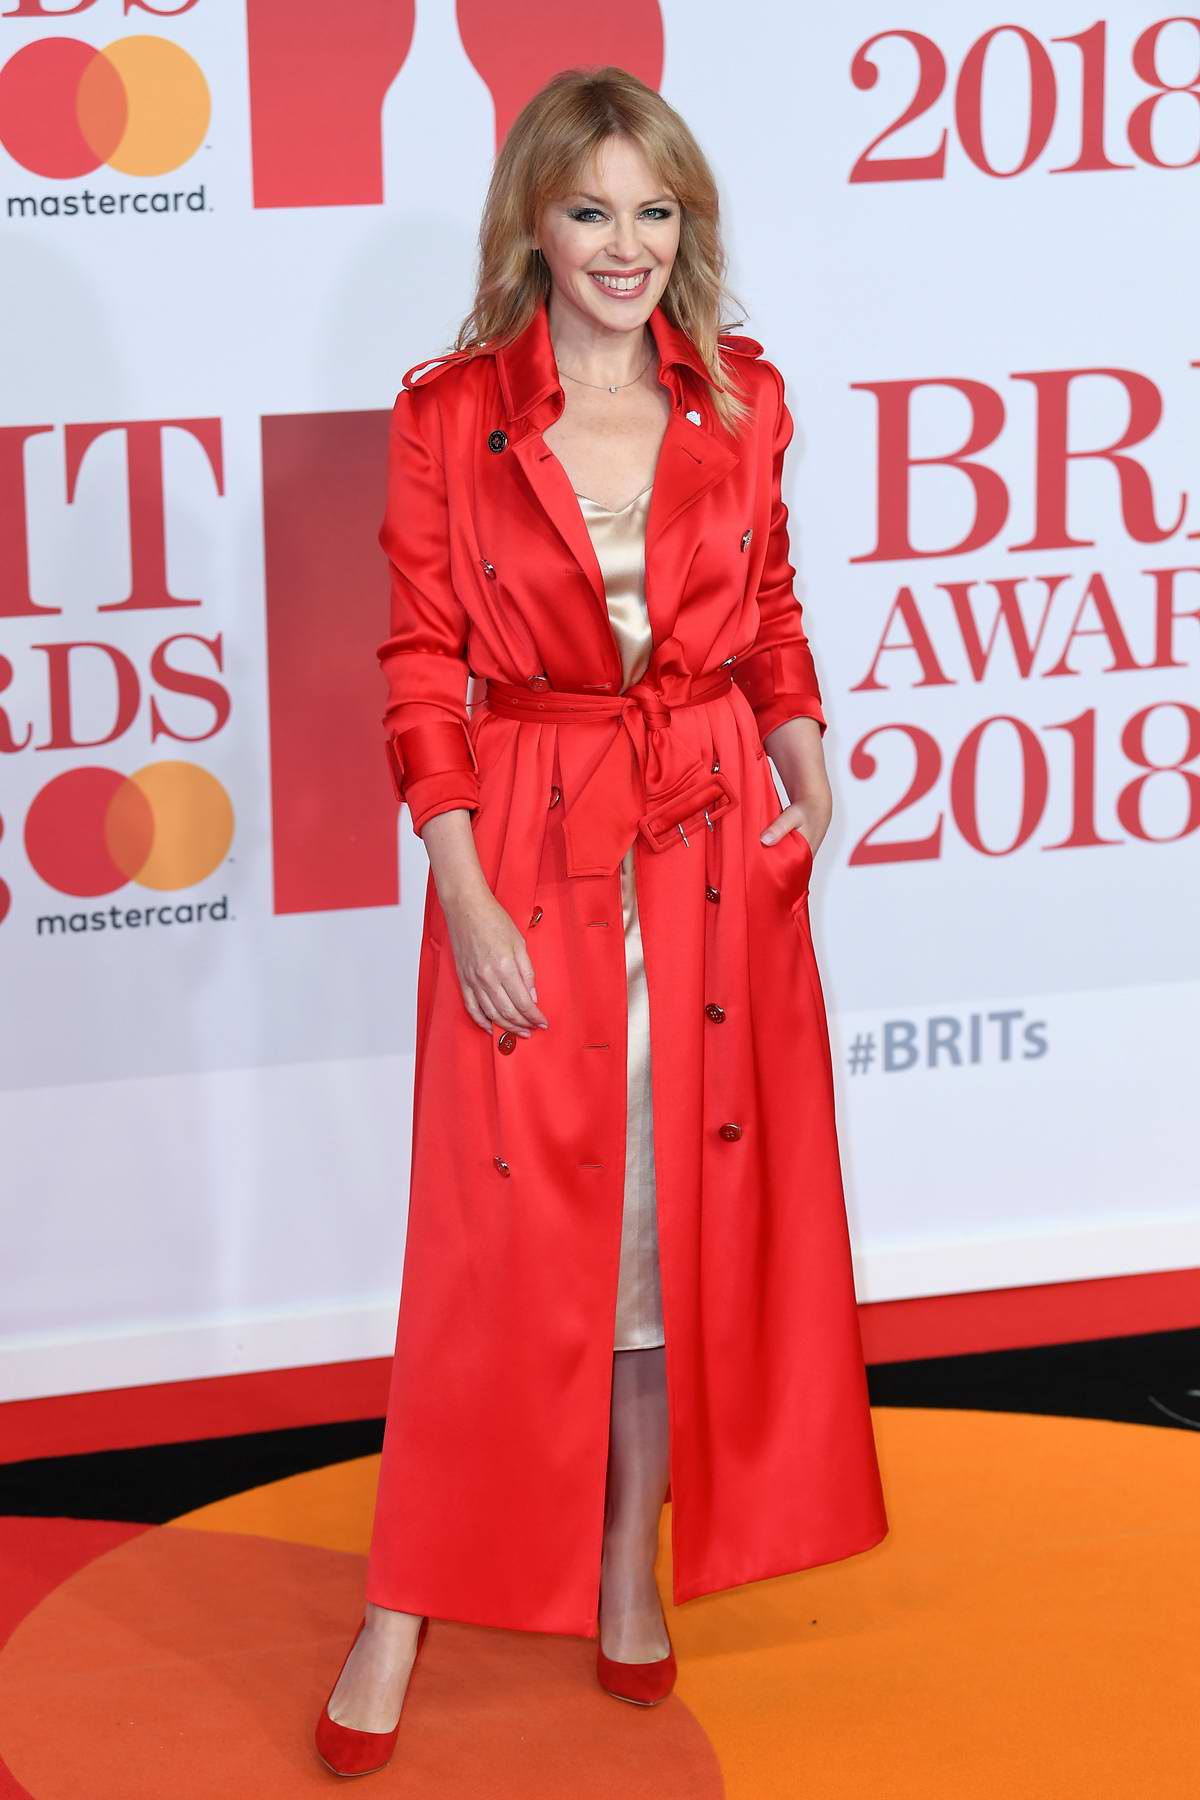 Kylie Minogue attends the 38th Brit Awards, held at the O2 Arena in London